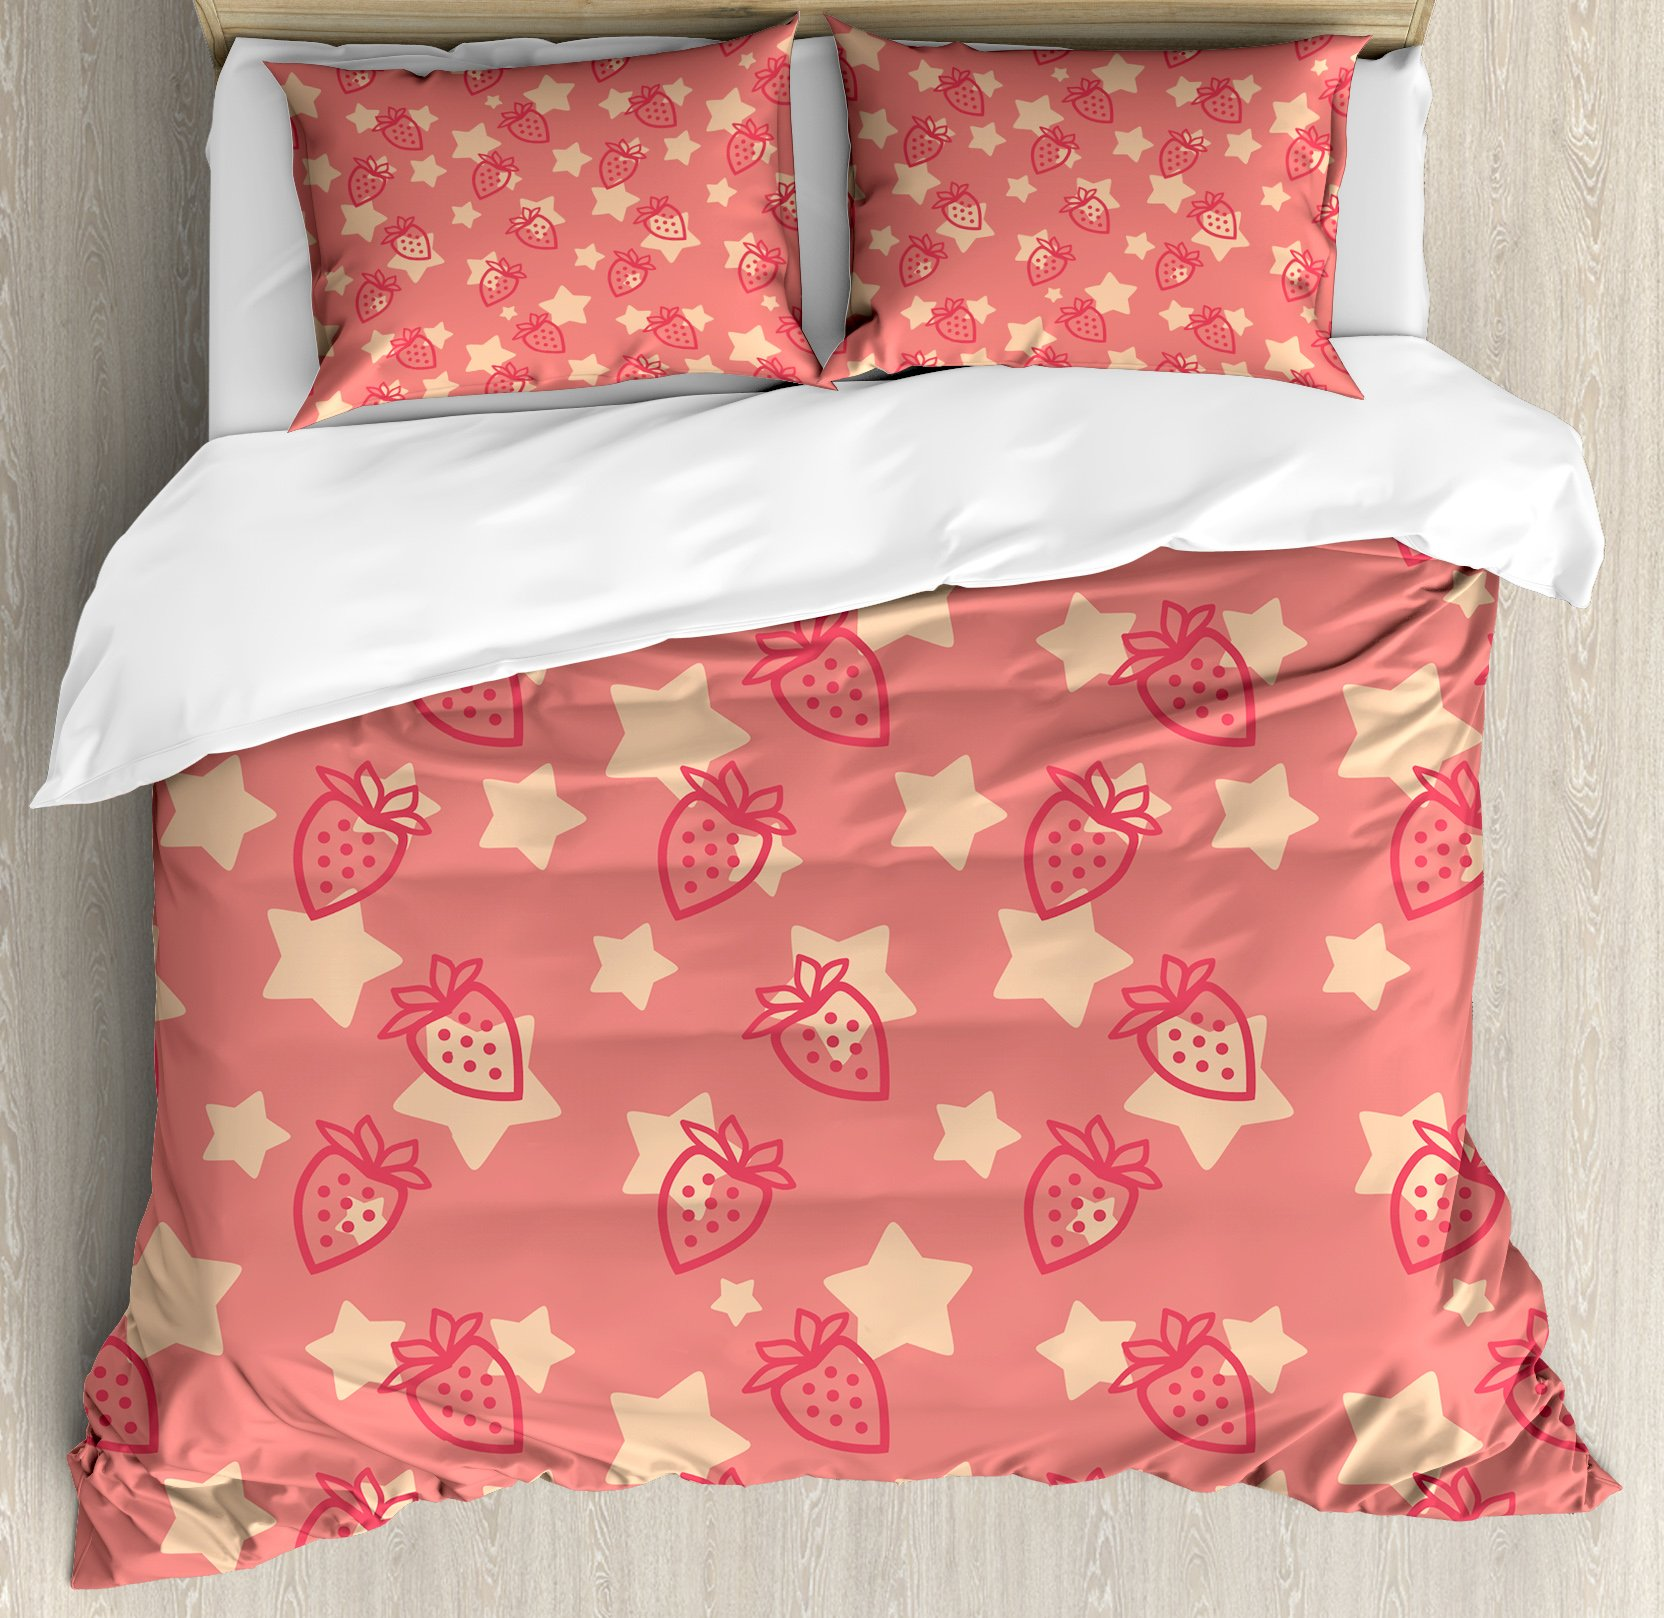 Fruits Queen Size Duvet Cover Set by Ambesonne, Cute Strawberries over Star Figures Organic Health Eating Tasty Artsy Design, Decorative 3 Piece Bedding Set with 2 Pillow Shams, Dark Coral Peach by Ambesonne (Image #1)